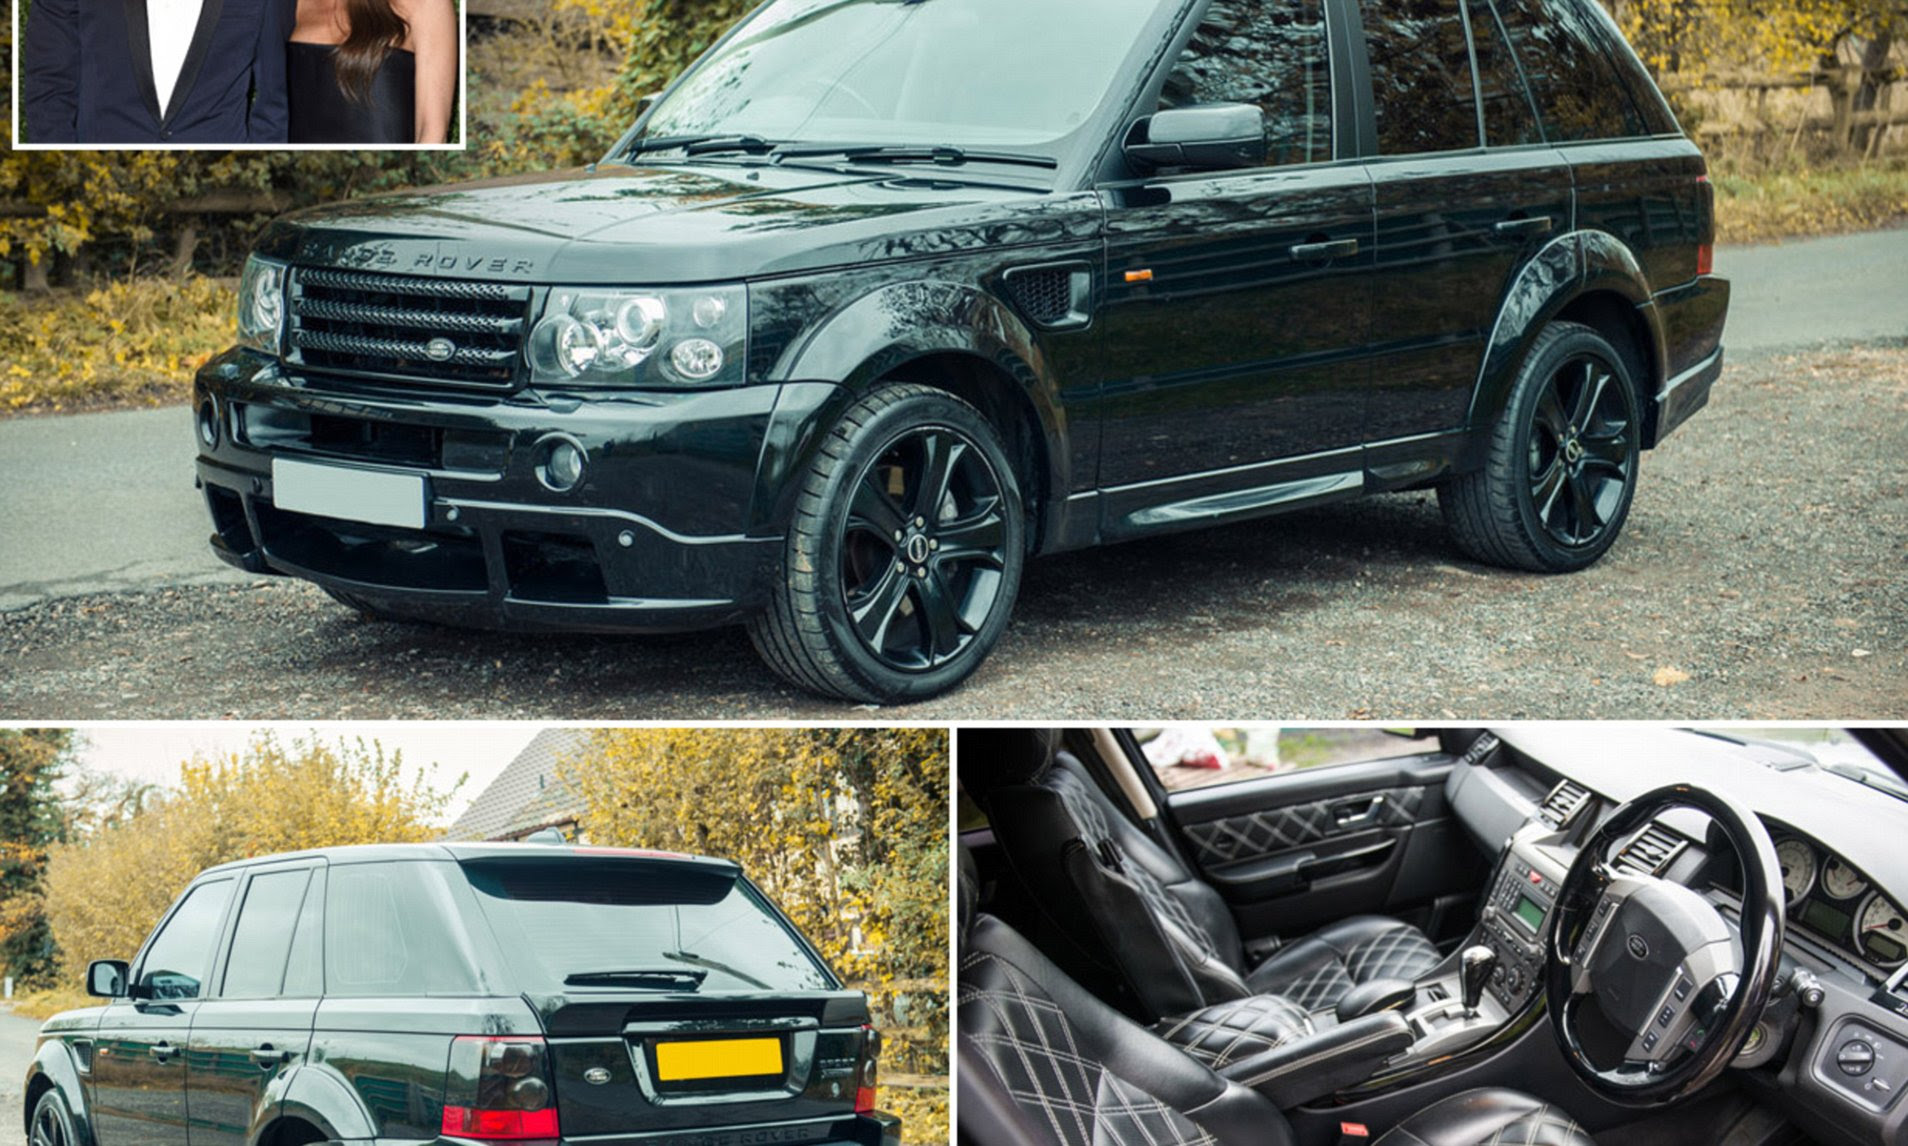 Image result for A Range Rover Sport built exclusively for David Beckham is set to sell for more than £30,000 – £70,000 less than he paid for it. Beckham paid £100,000 to get the flash dark green 4×4 upgraded with his own specific features in 2007,Mailonline reports. Experts installed a unique interior, which included hand-stitched quilted leather seats, a bespoke sound system and twin rear screens that his sons Brooklyn and Romeo could use to play PlayStation. It also has a plaque with 'Designed for David Beckham' on it and DVLA records list the former England captain, 42, as the first owner.